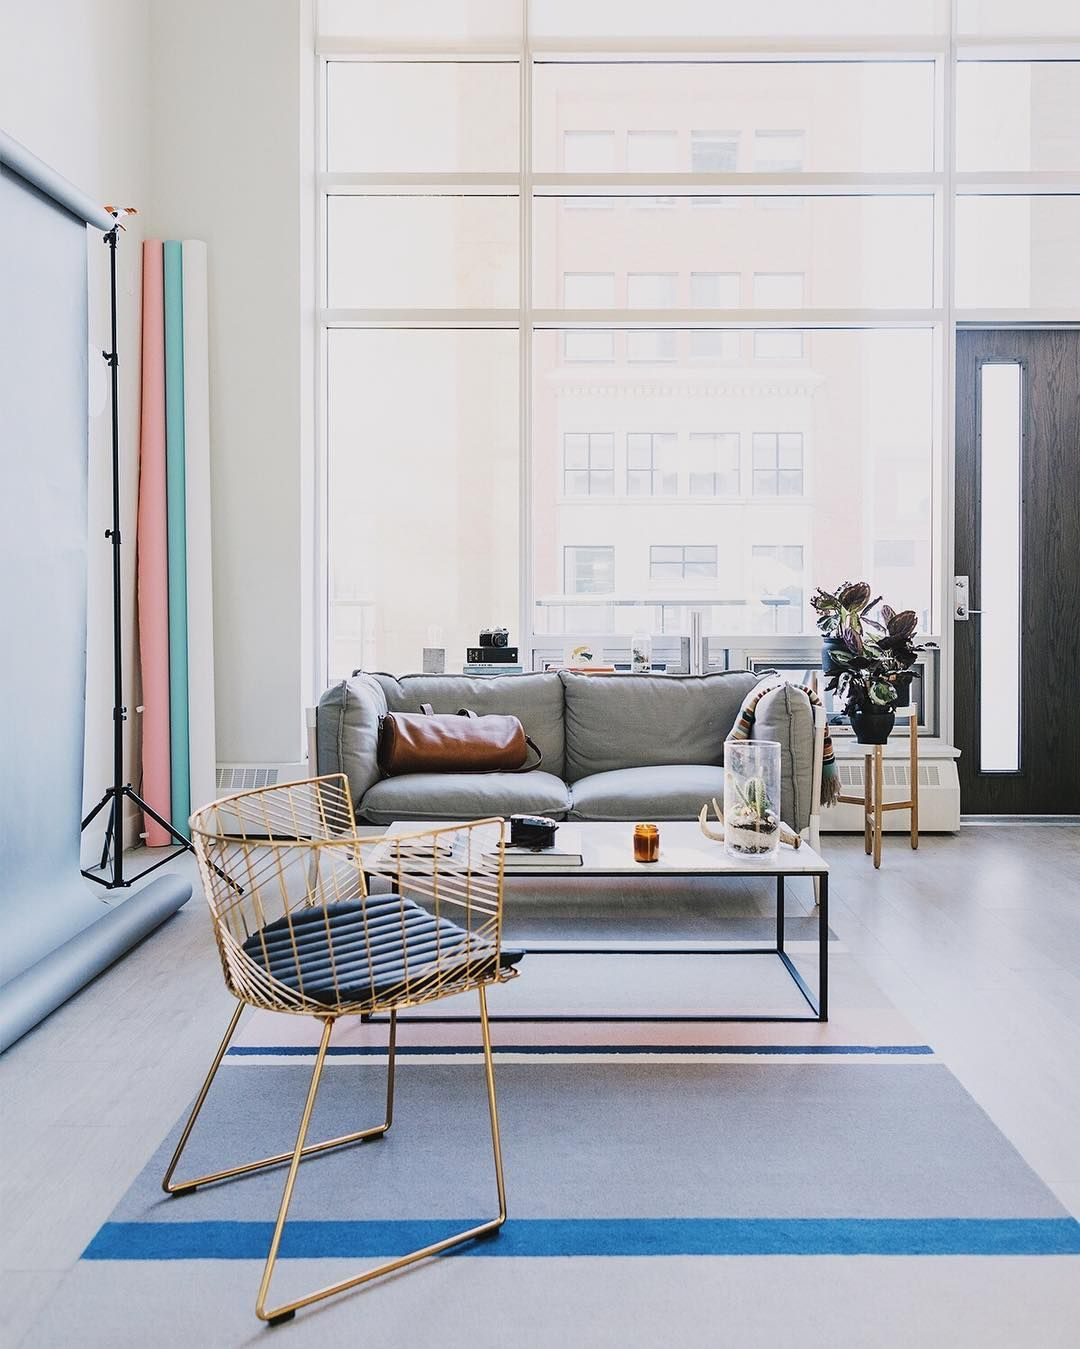 Grotto Sofa And Minimalista Coffee Table By Blu Dot Photo By - Blu dot minimalista coffee table